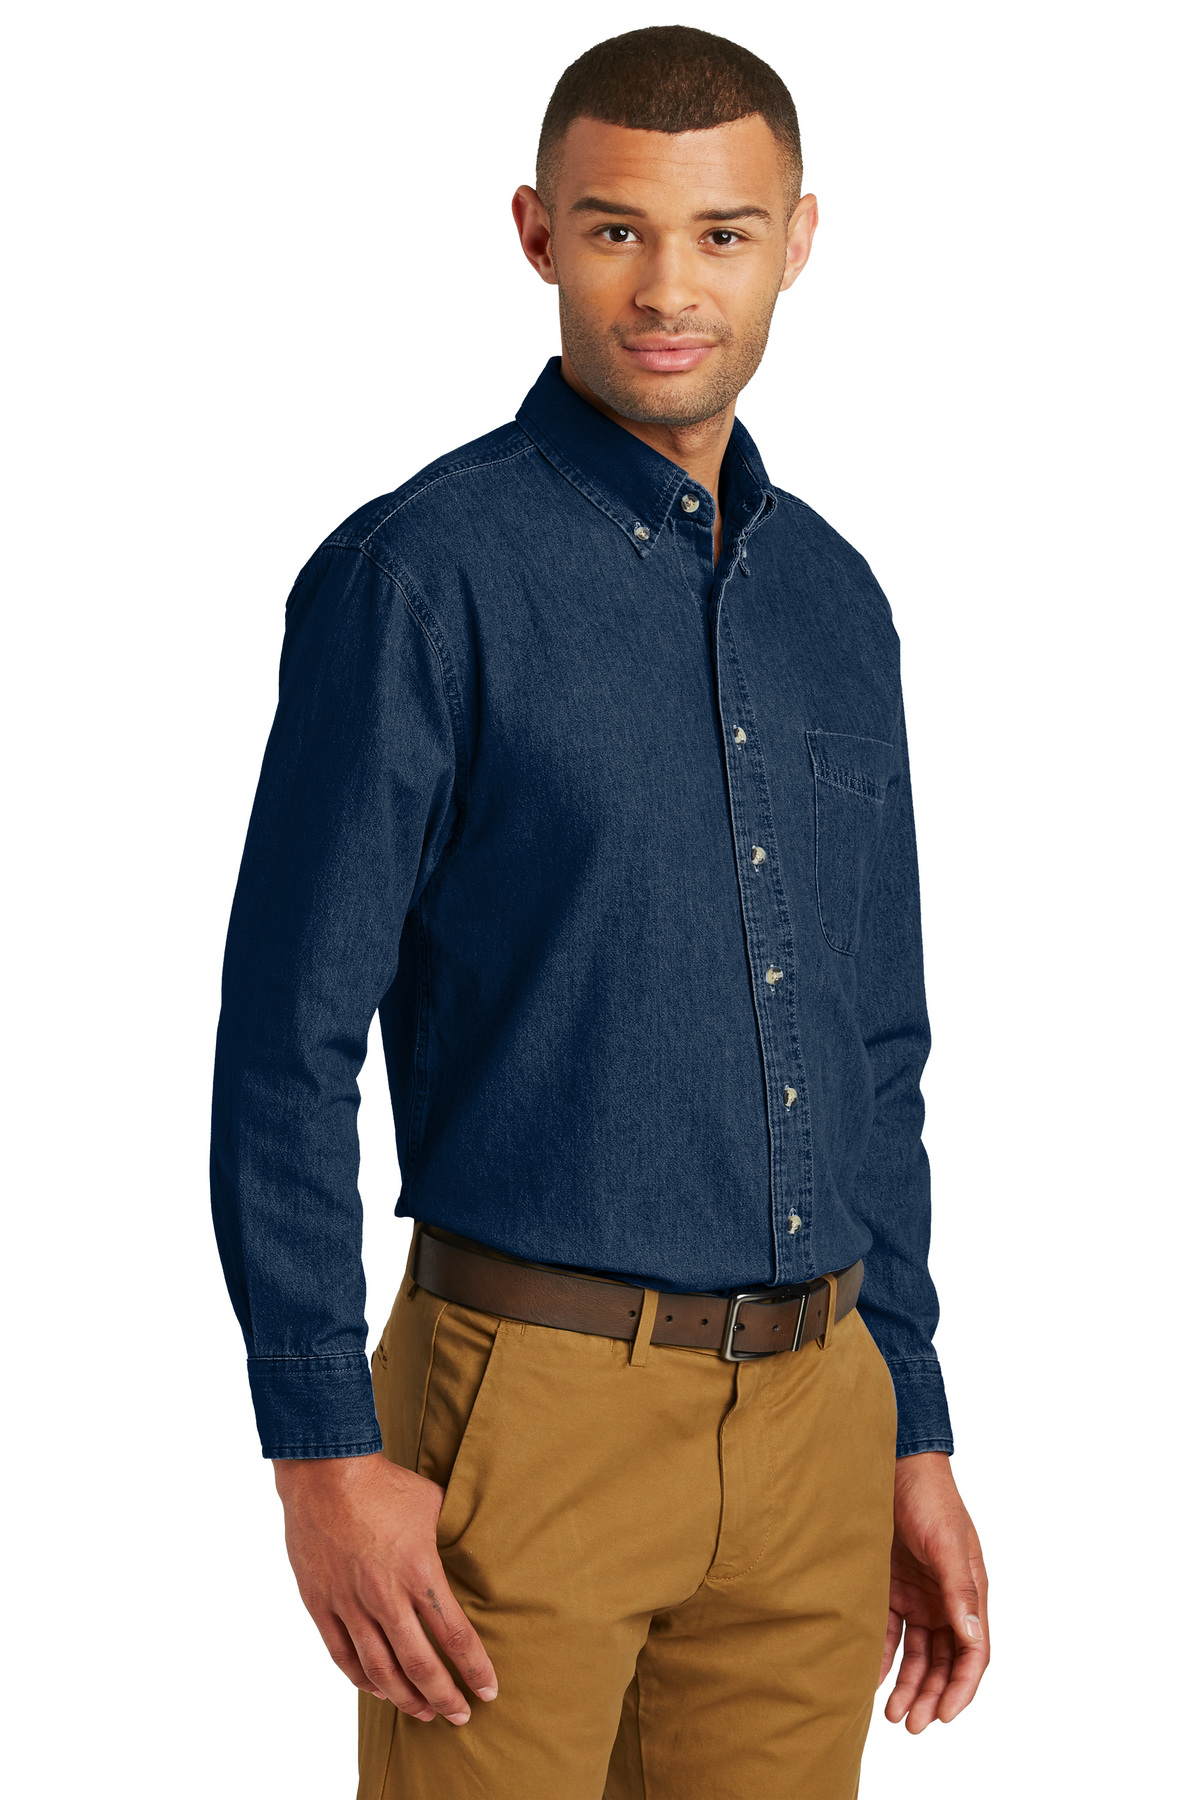 41649b63c9c ... Port   Company® - Long Sleeve Value Denim Shirt. A maximum of 8 logos  have been uploaded. Please remove a logo from My Logos to continue